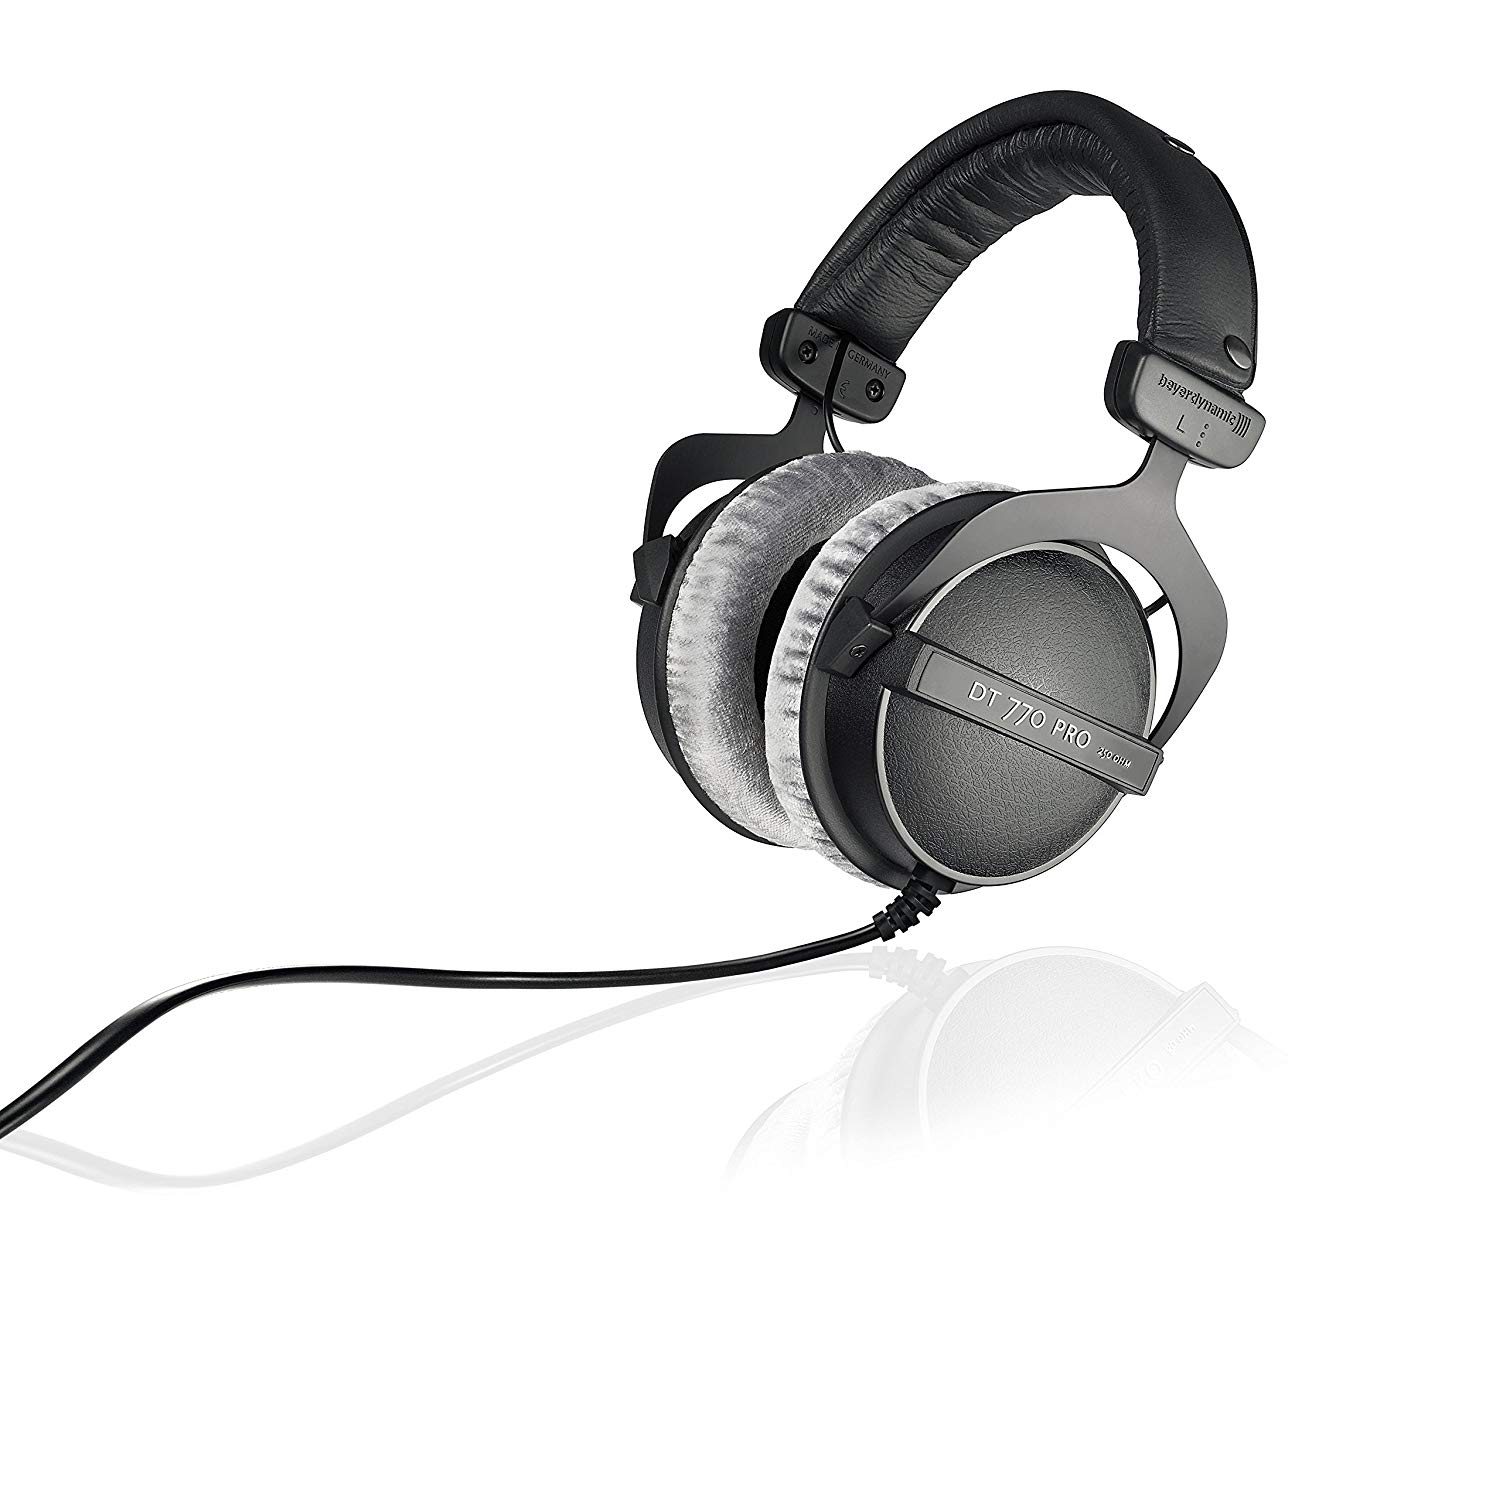 Beyerdynamic DT770 Pro - Headphones under $200